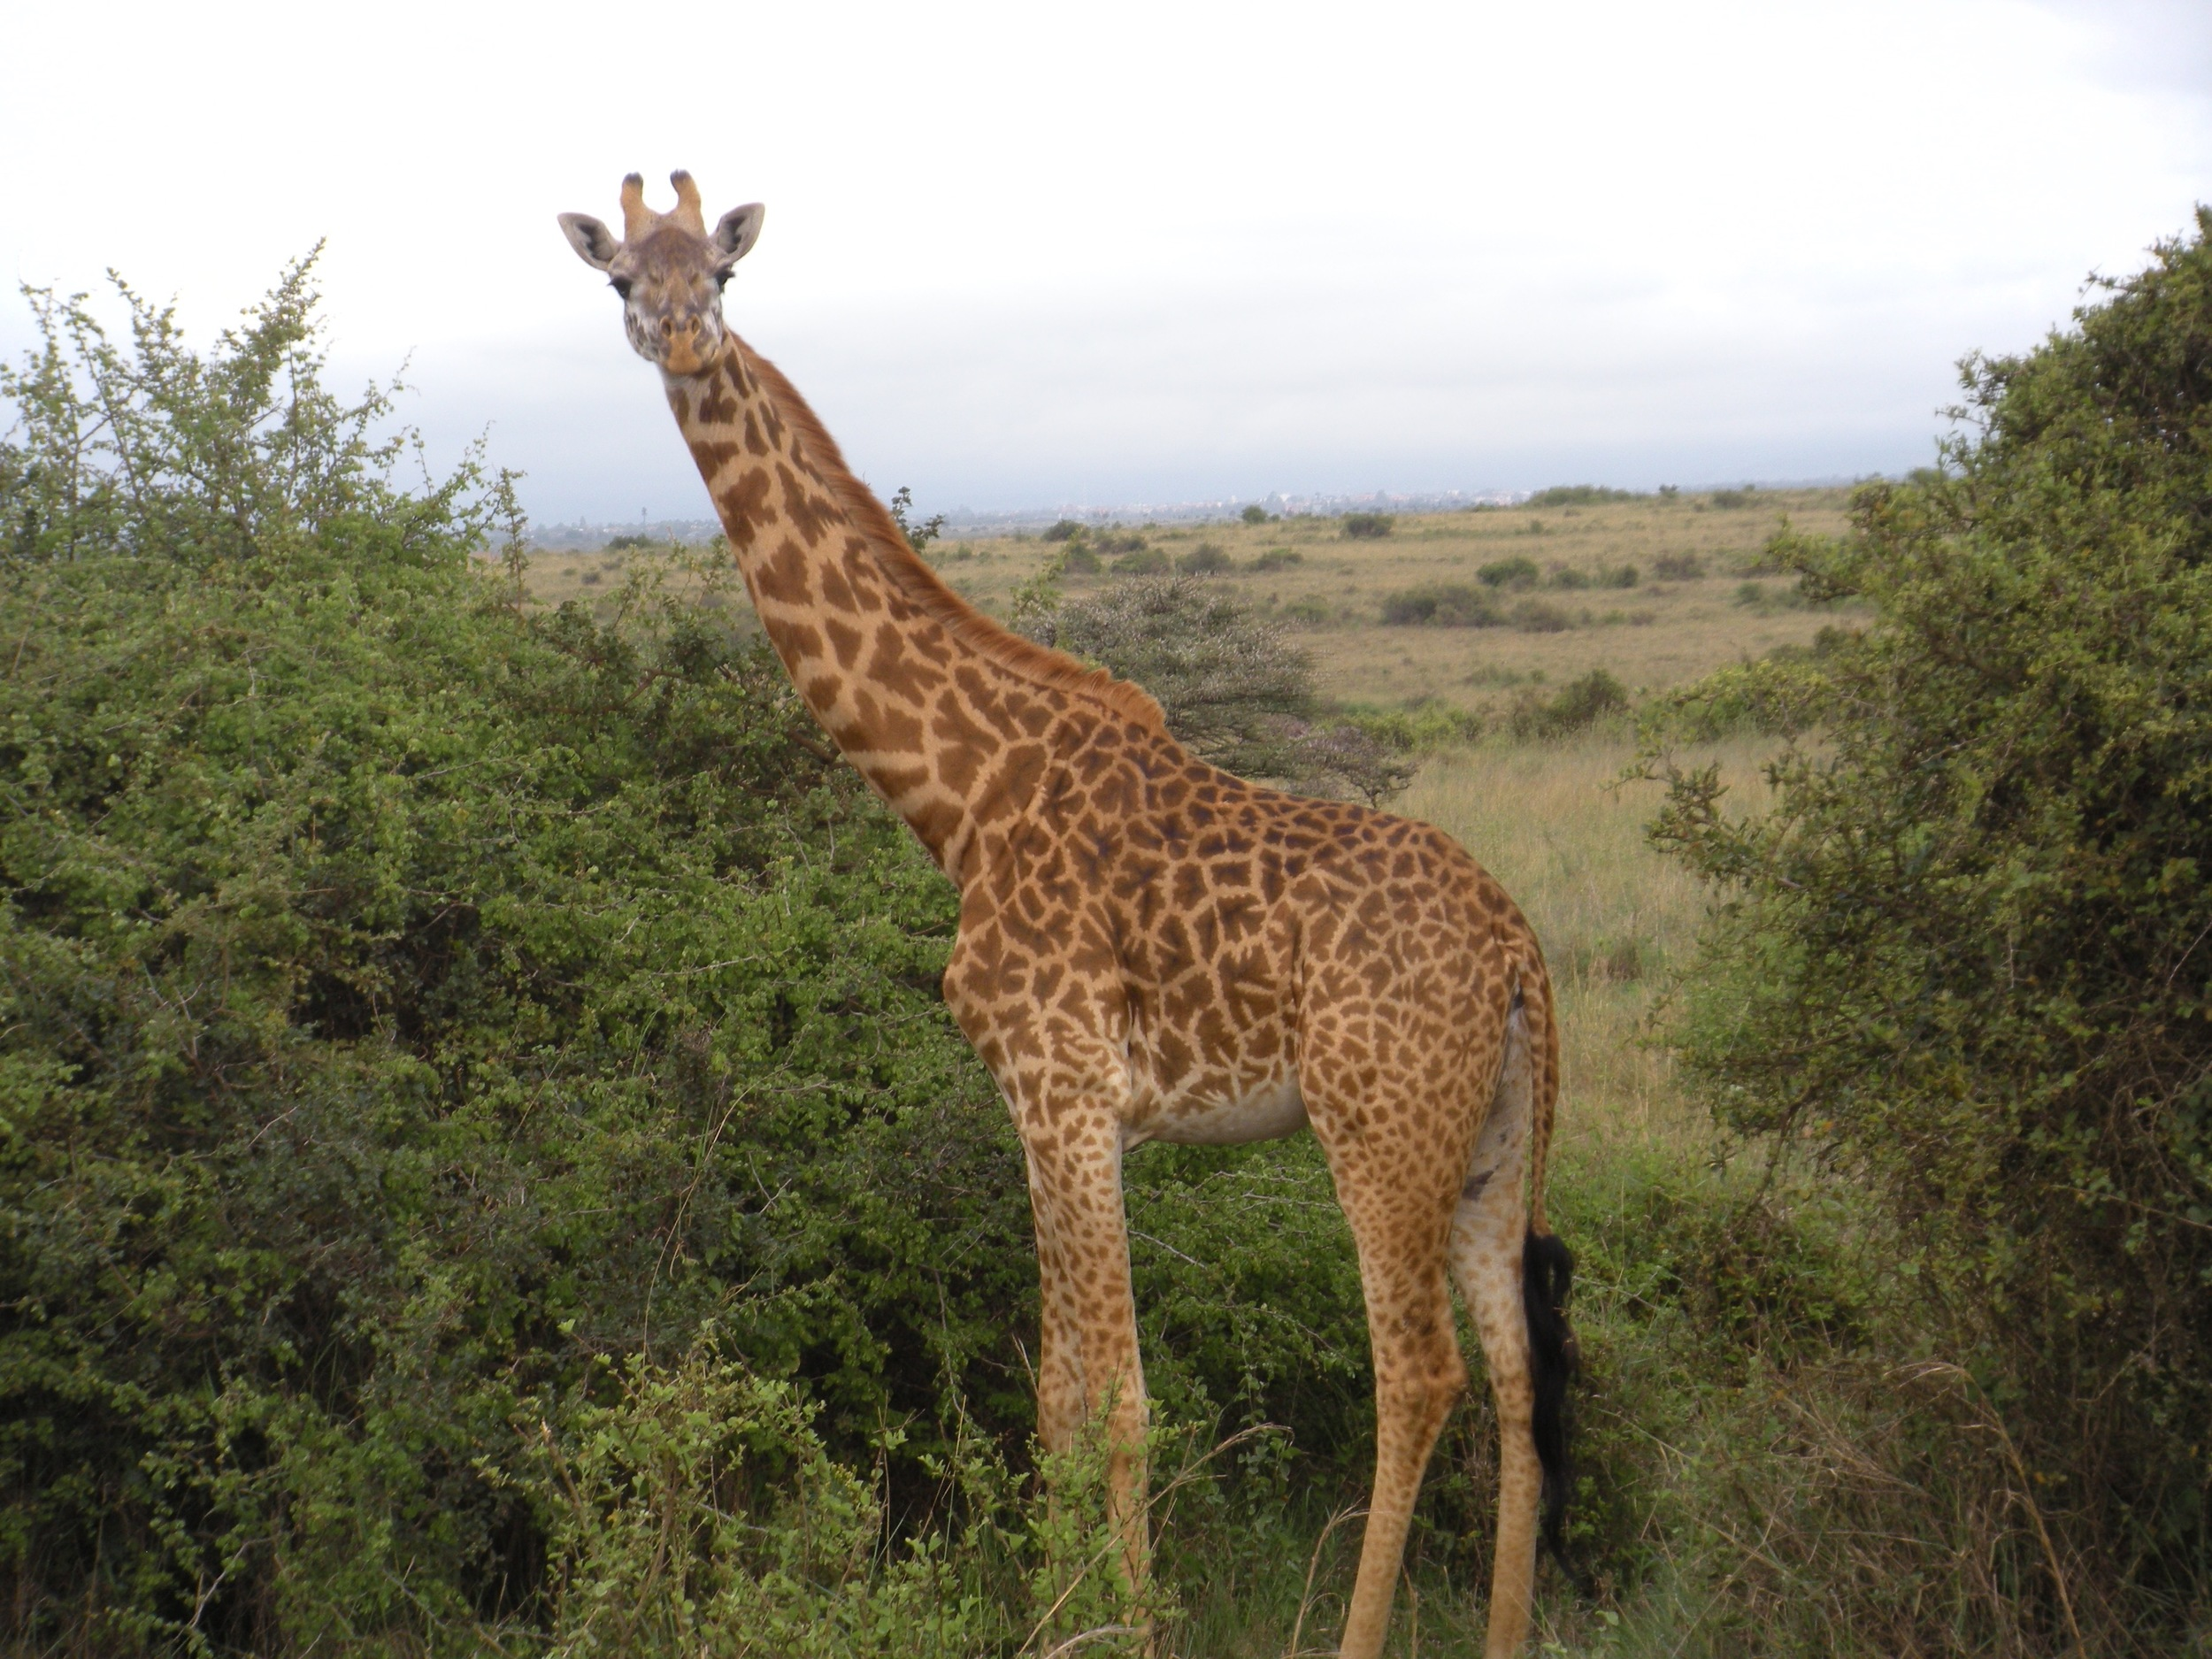 You'll learn even more about the giraffe's in Kenya during our two week trip.